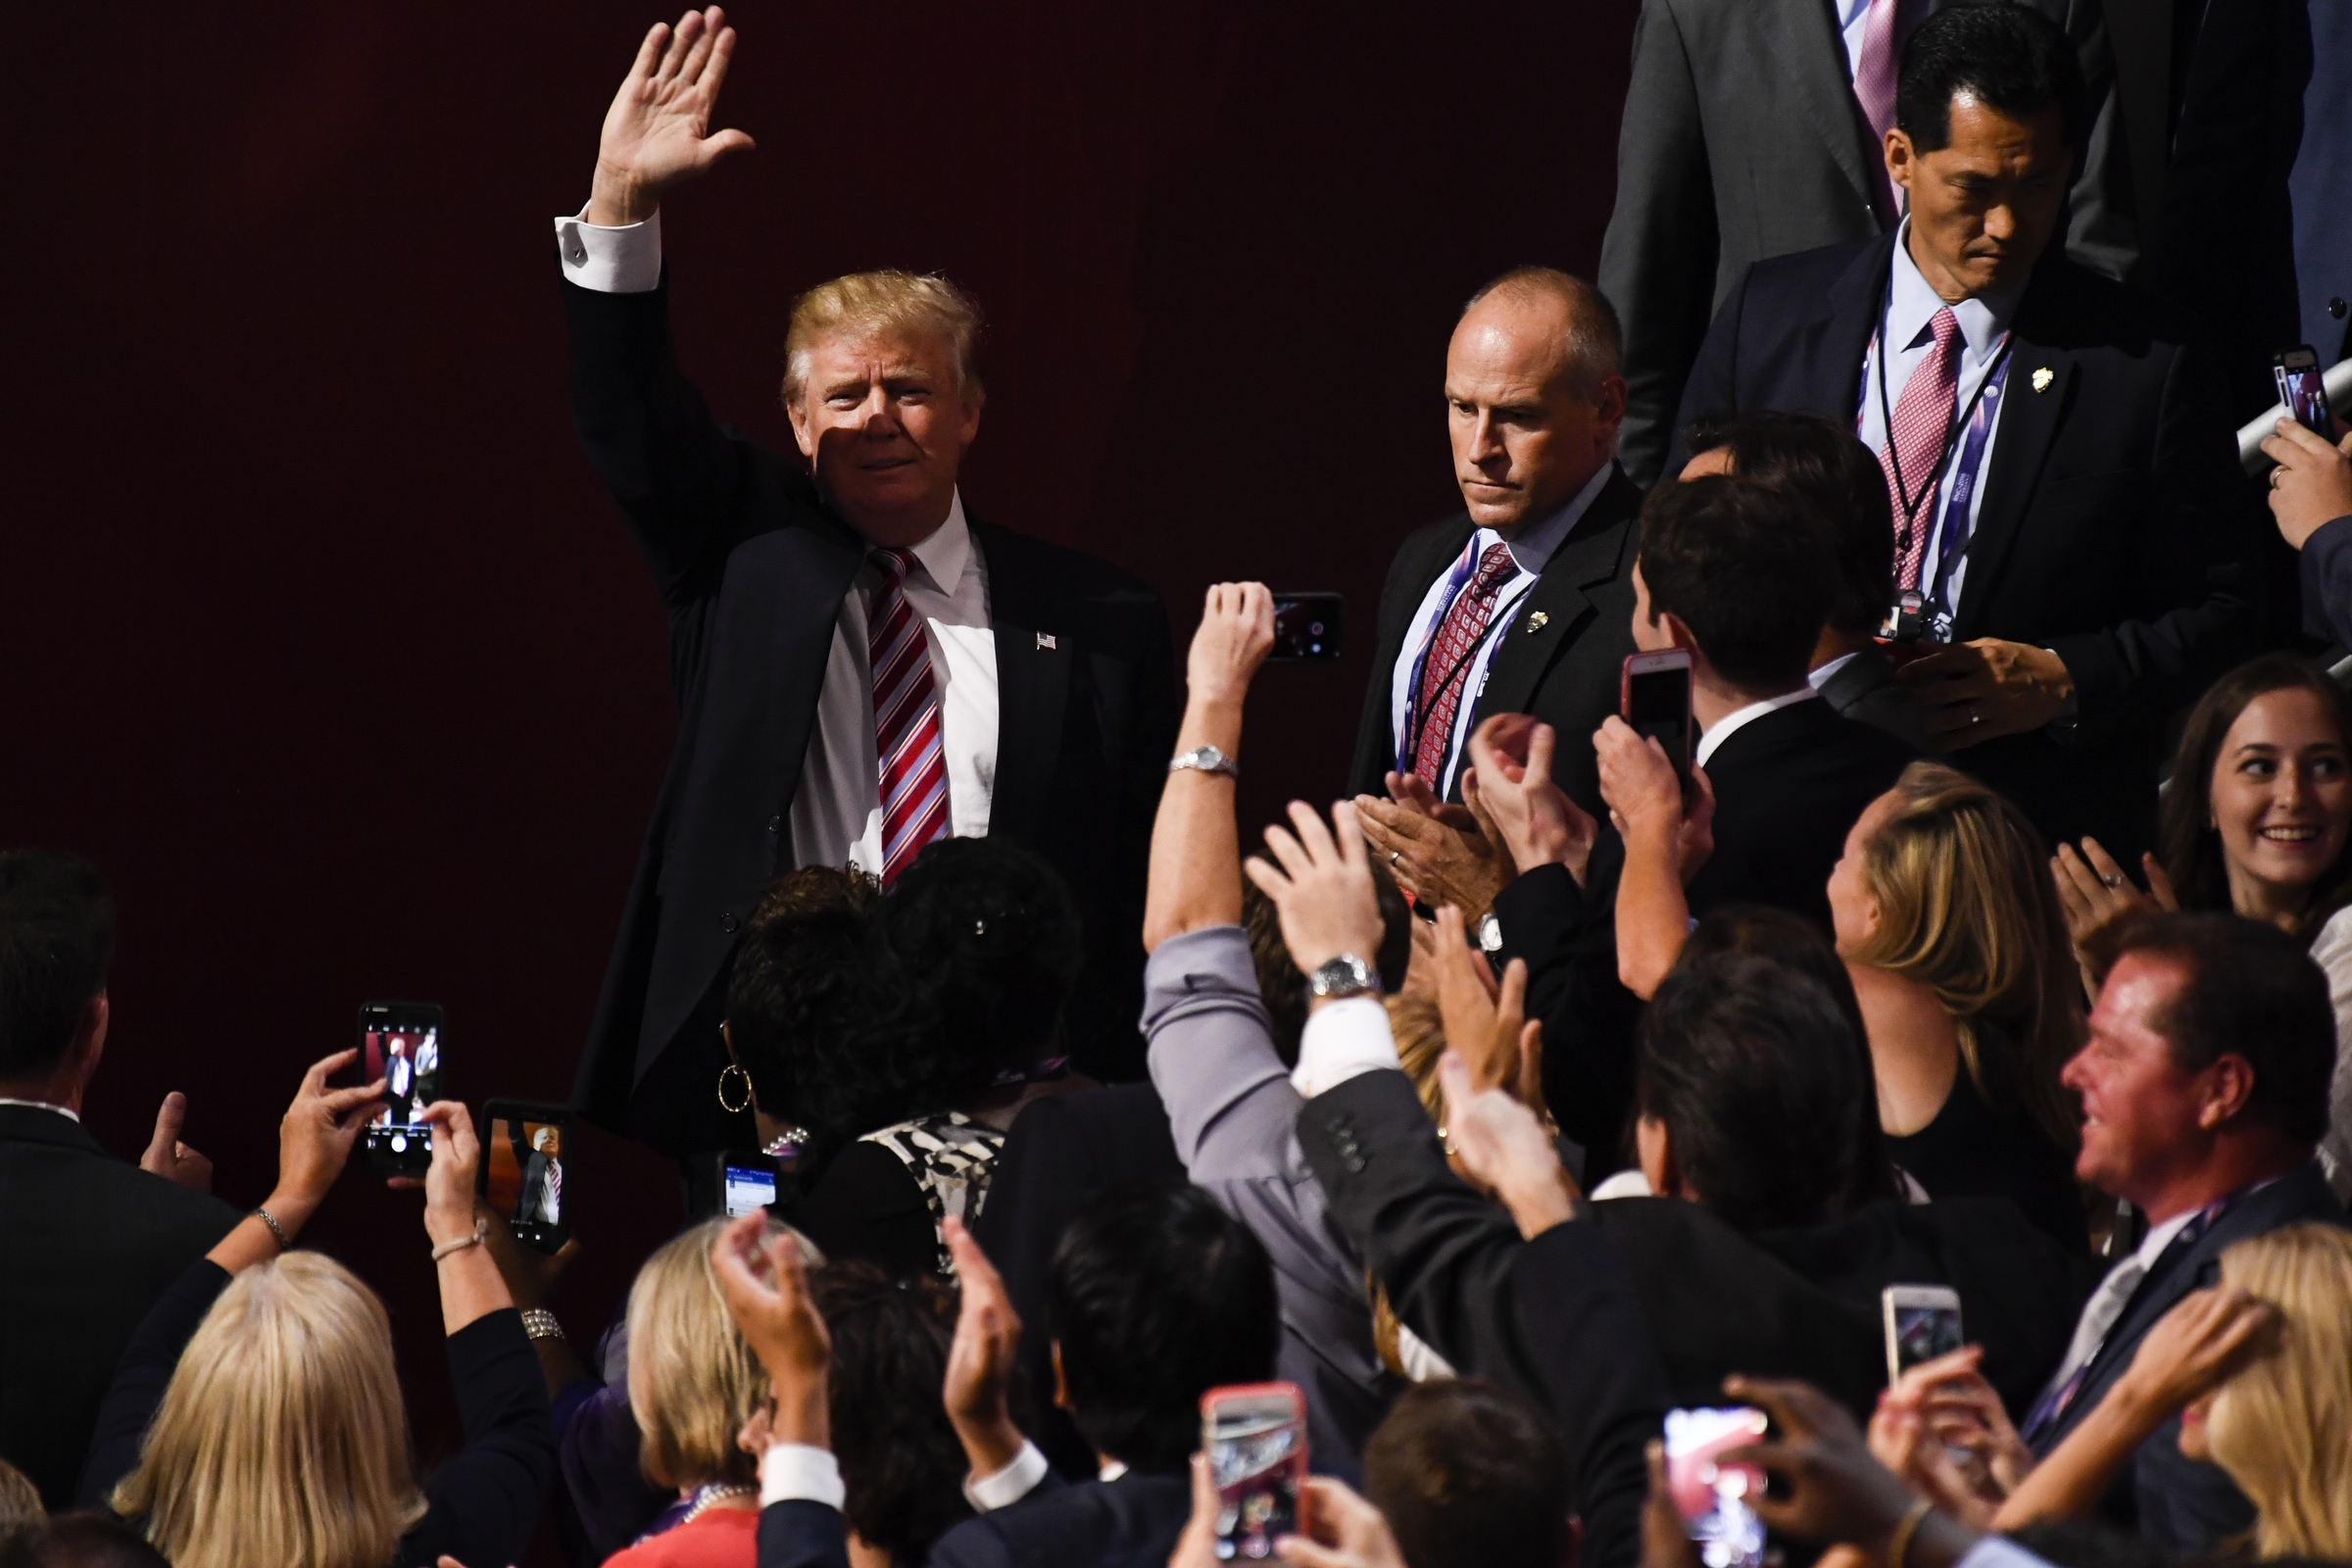 UNITED STATES - JULY 20: Republican Presidential nominee Donald Trump waves as he arrives in the Quicken Loans Arena at the 2016 Republican National Convention in Cleveland, Ohio on Wednesday July 20, 2016. (Photo By Bill Clark/CQ Roll Call)